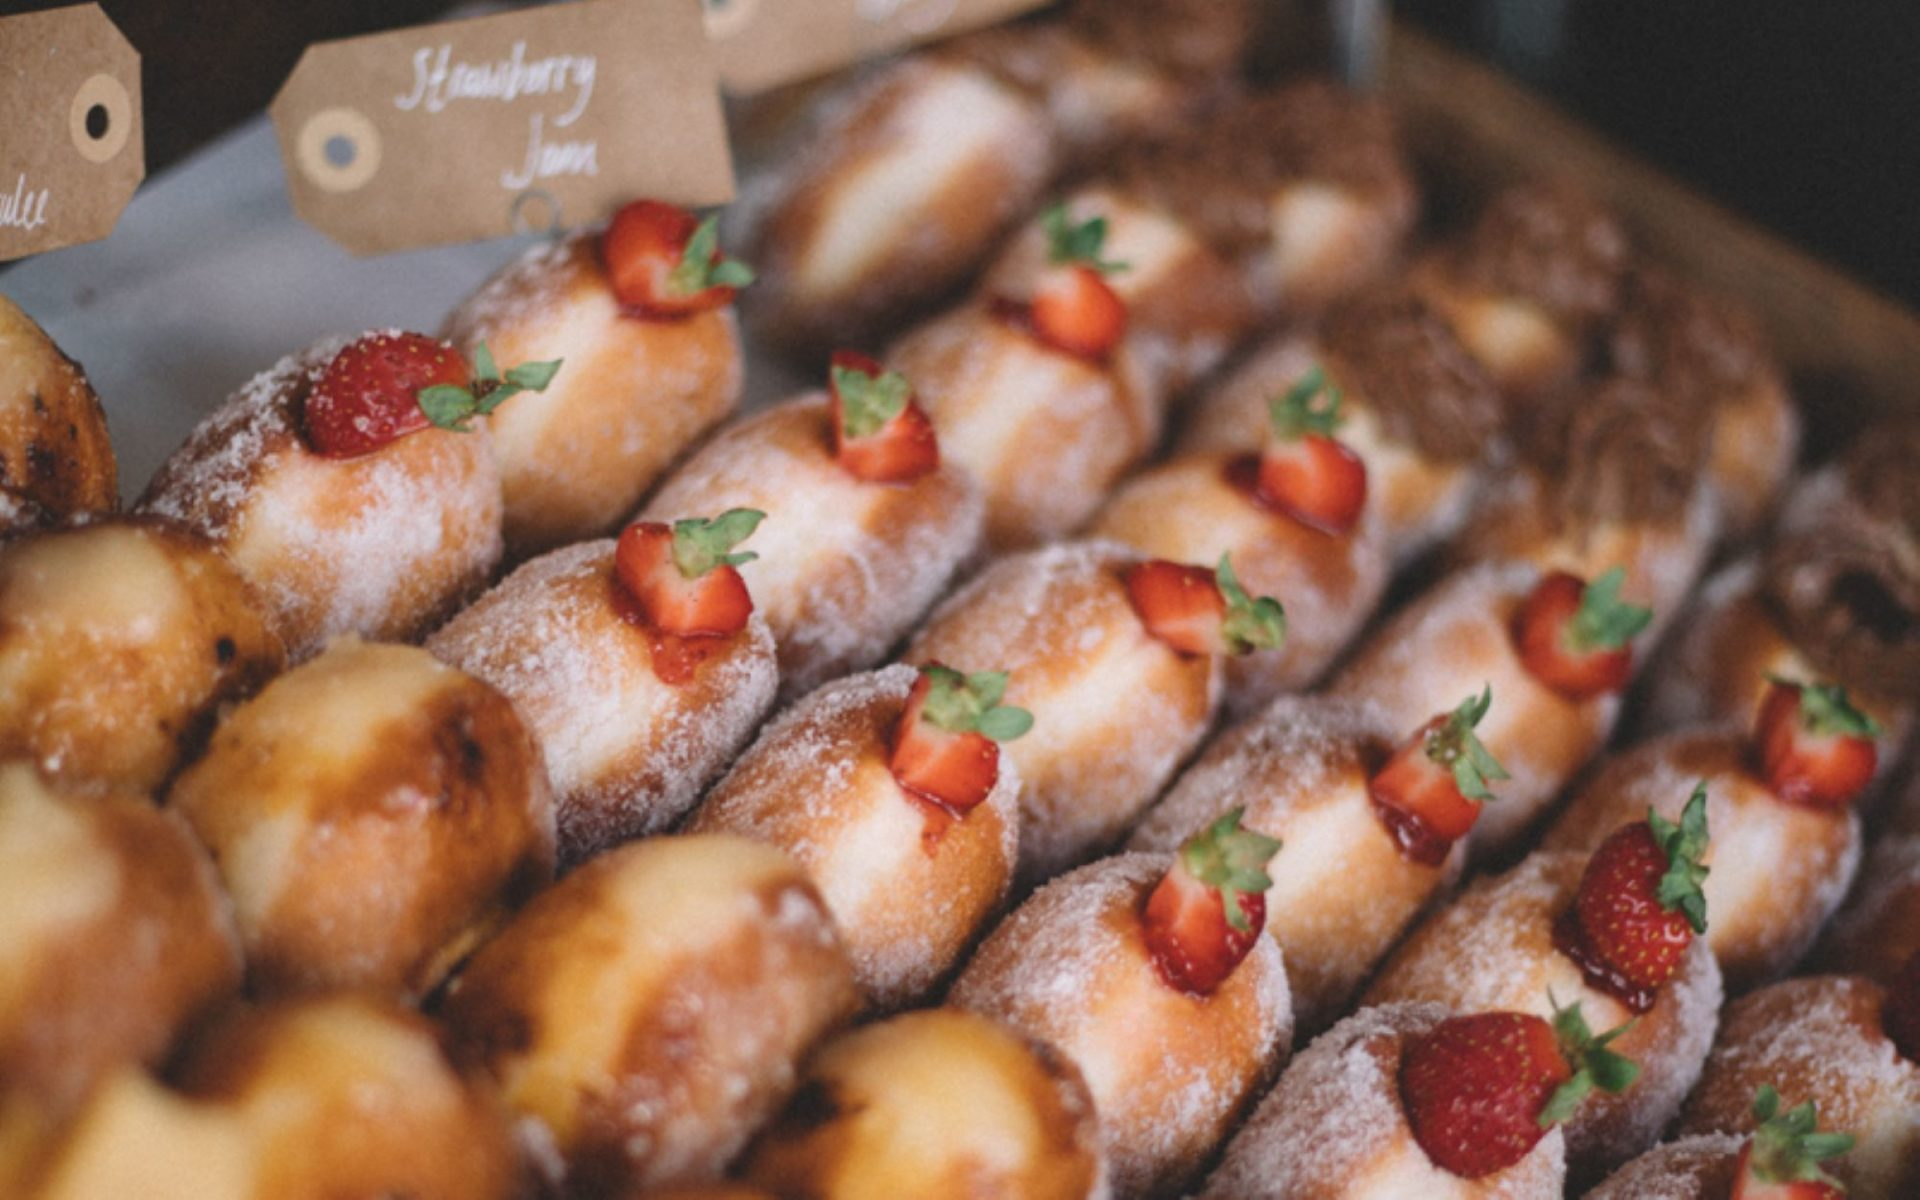 The Flour Pot Donuts